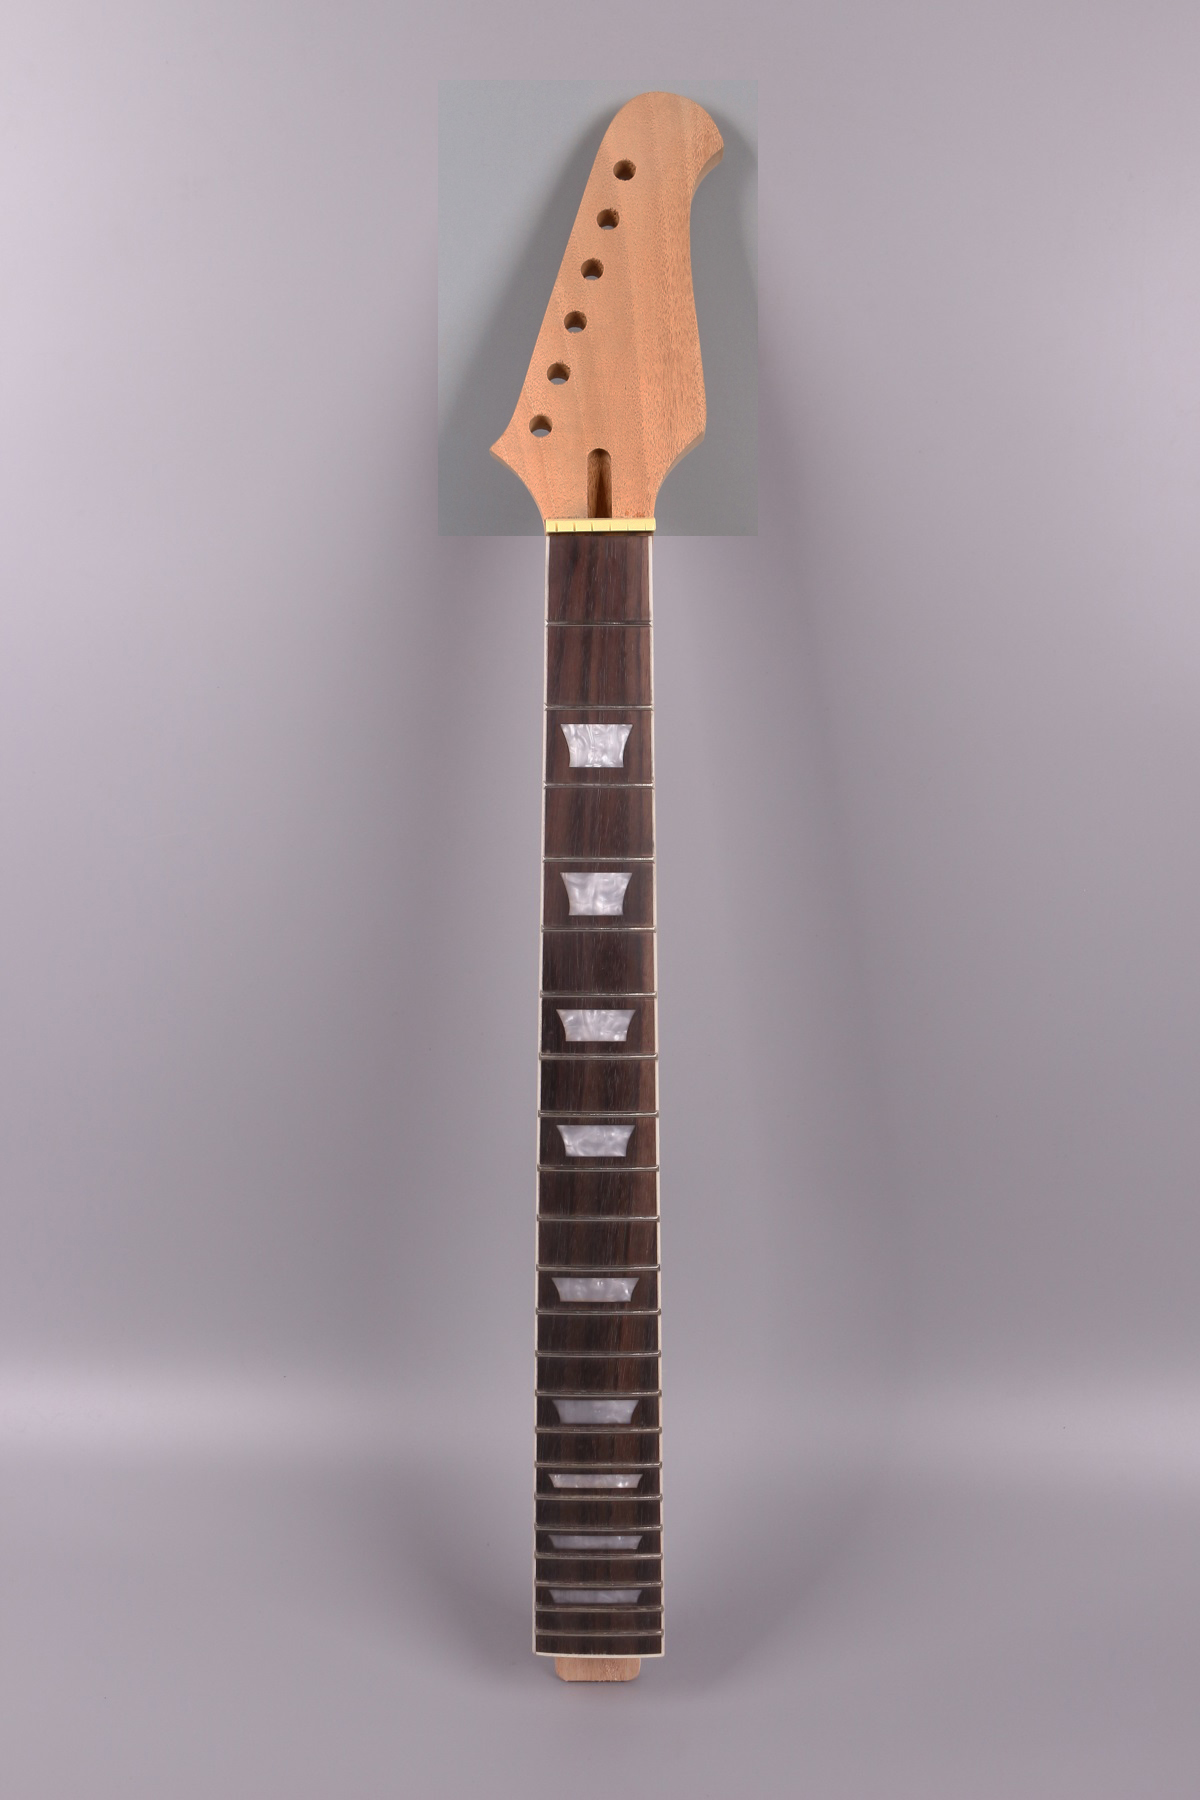 22fret Guitar Neck 24.75 Inch Mahogany Rosewood Fretboard Set In Glue On Style Firebird Headstock